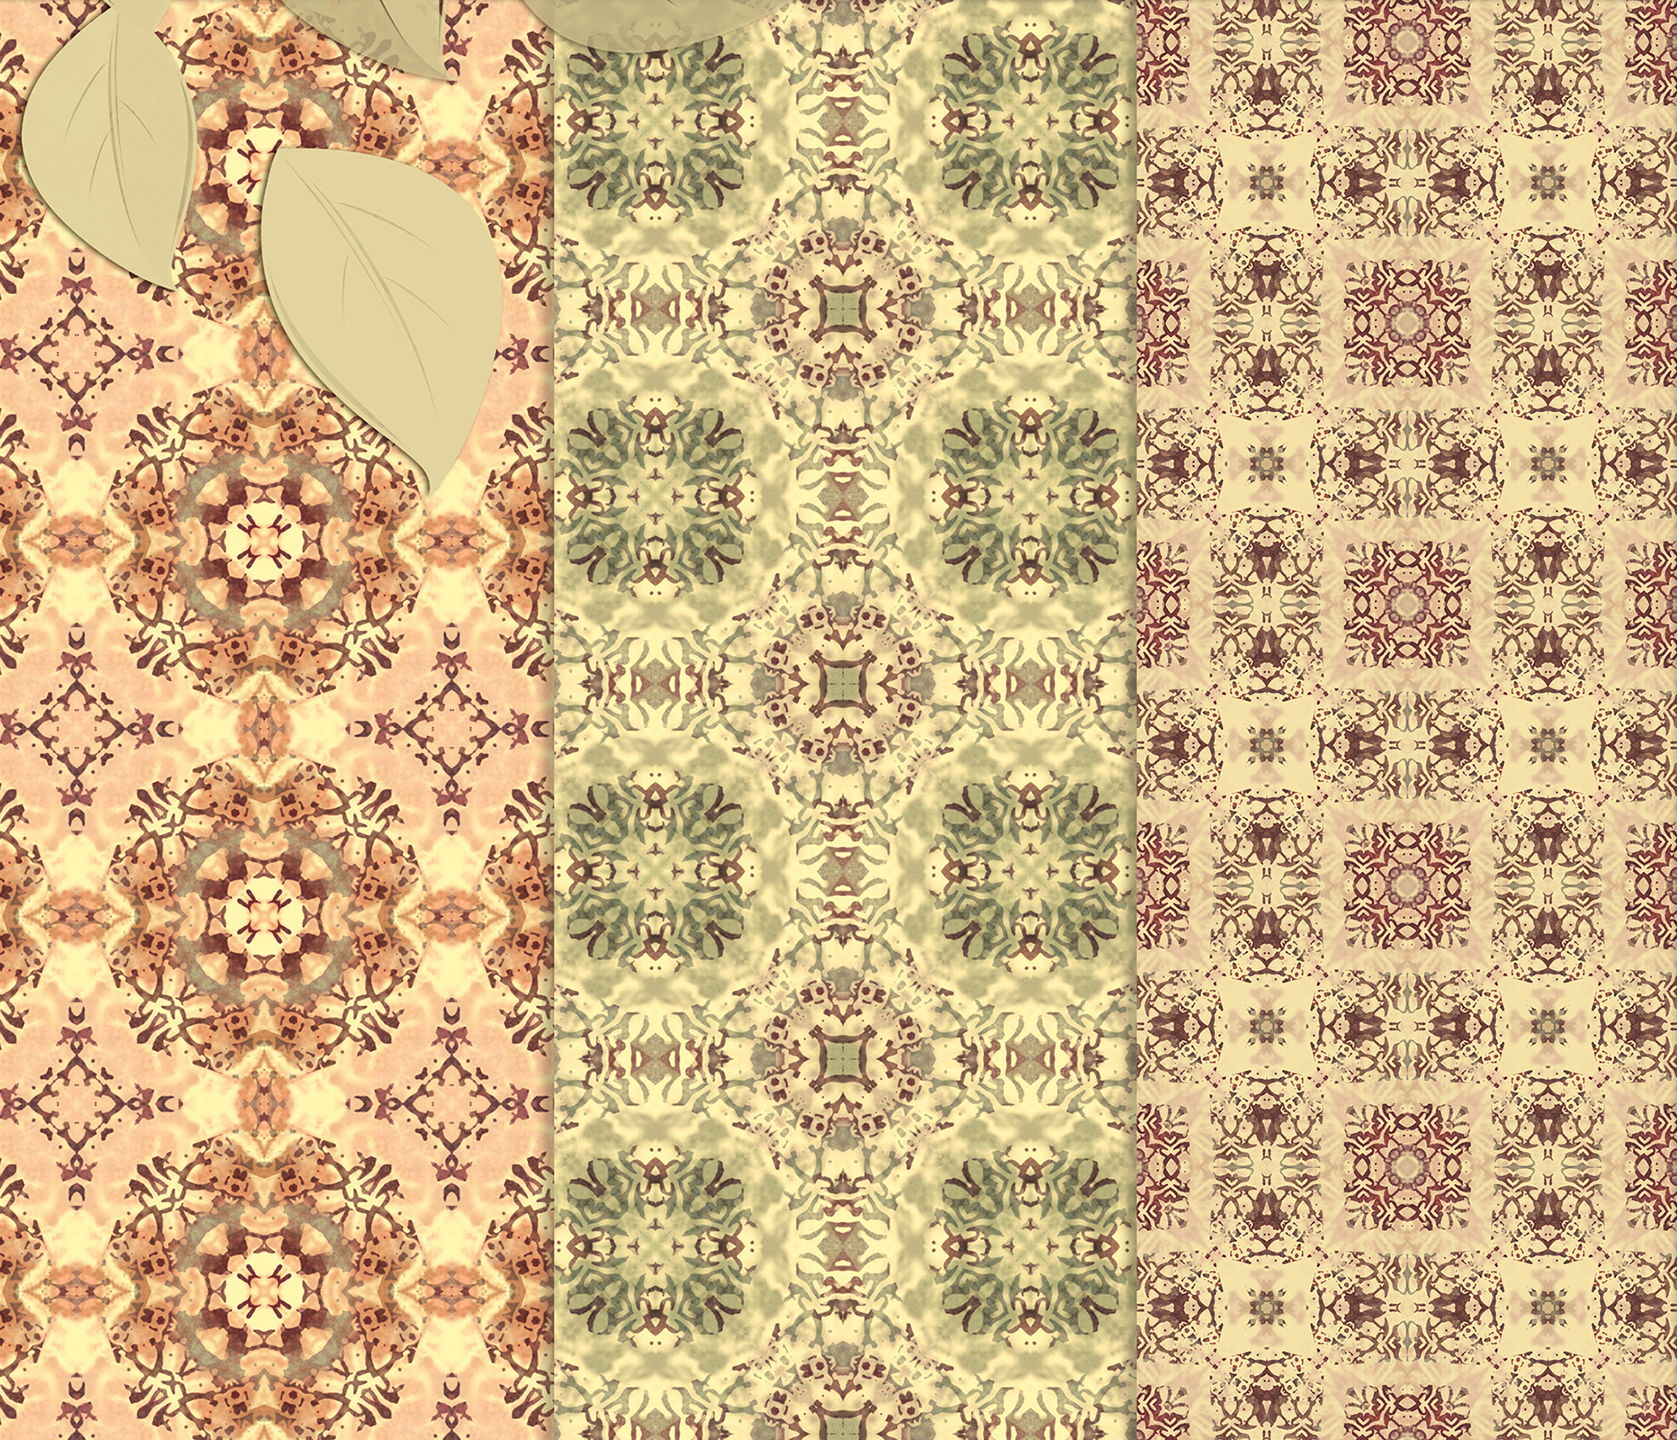 Vintage Abstract Patterns, Digital Scrapbook Paper example image 6